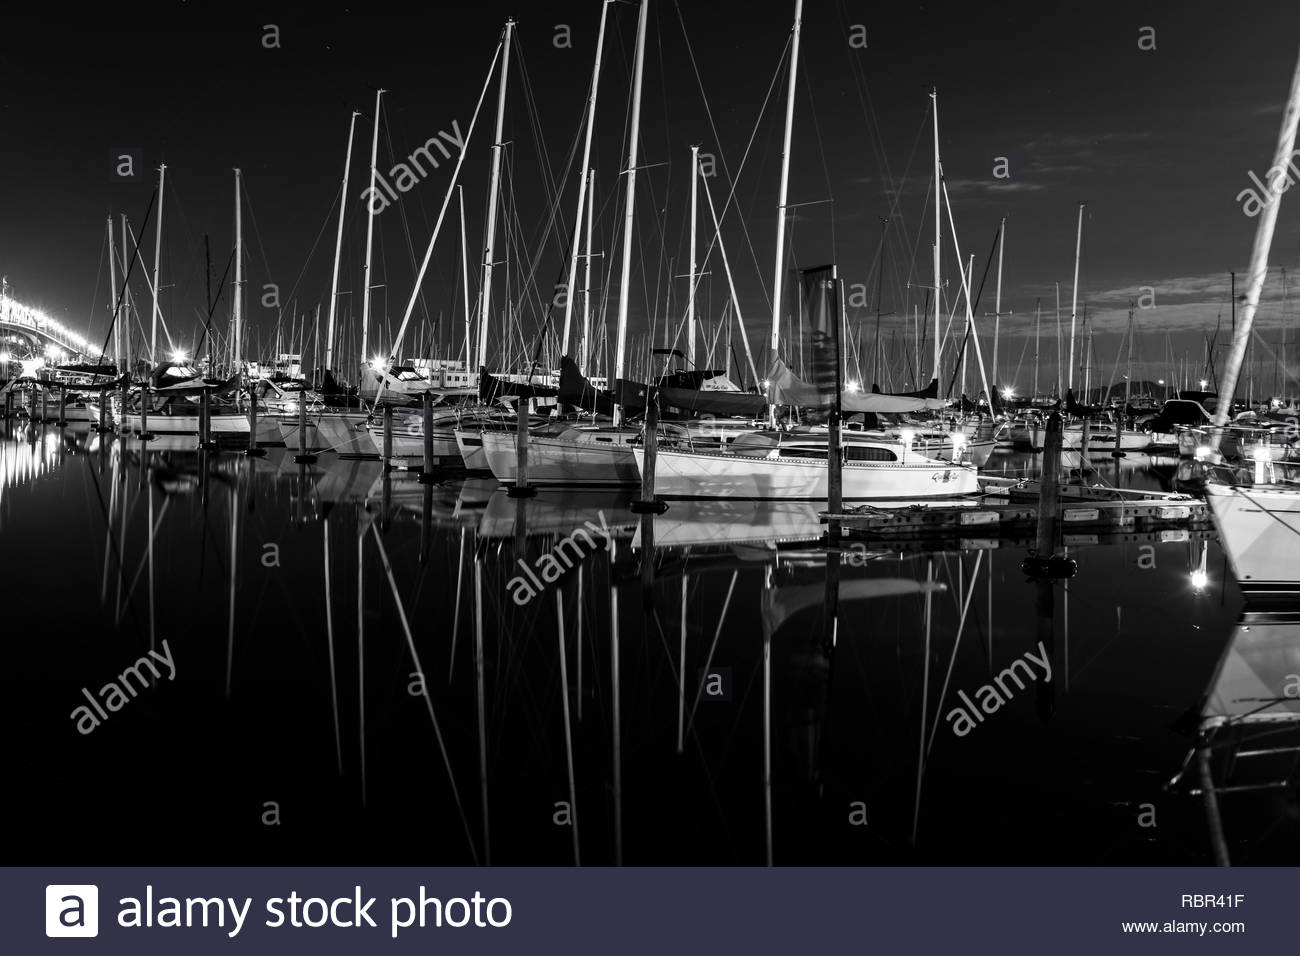 Boats in Auckland Harbour - Stock Image